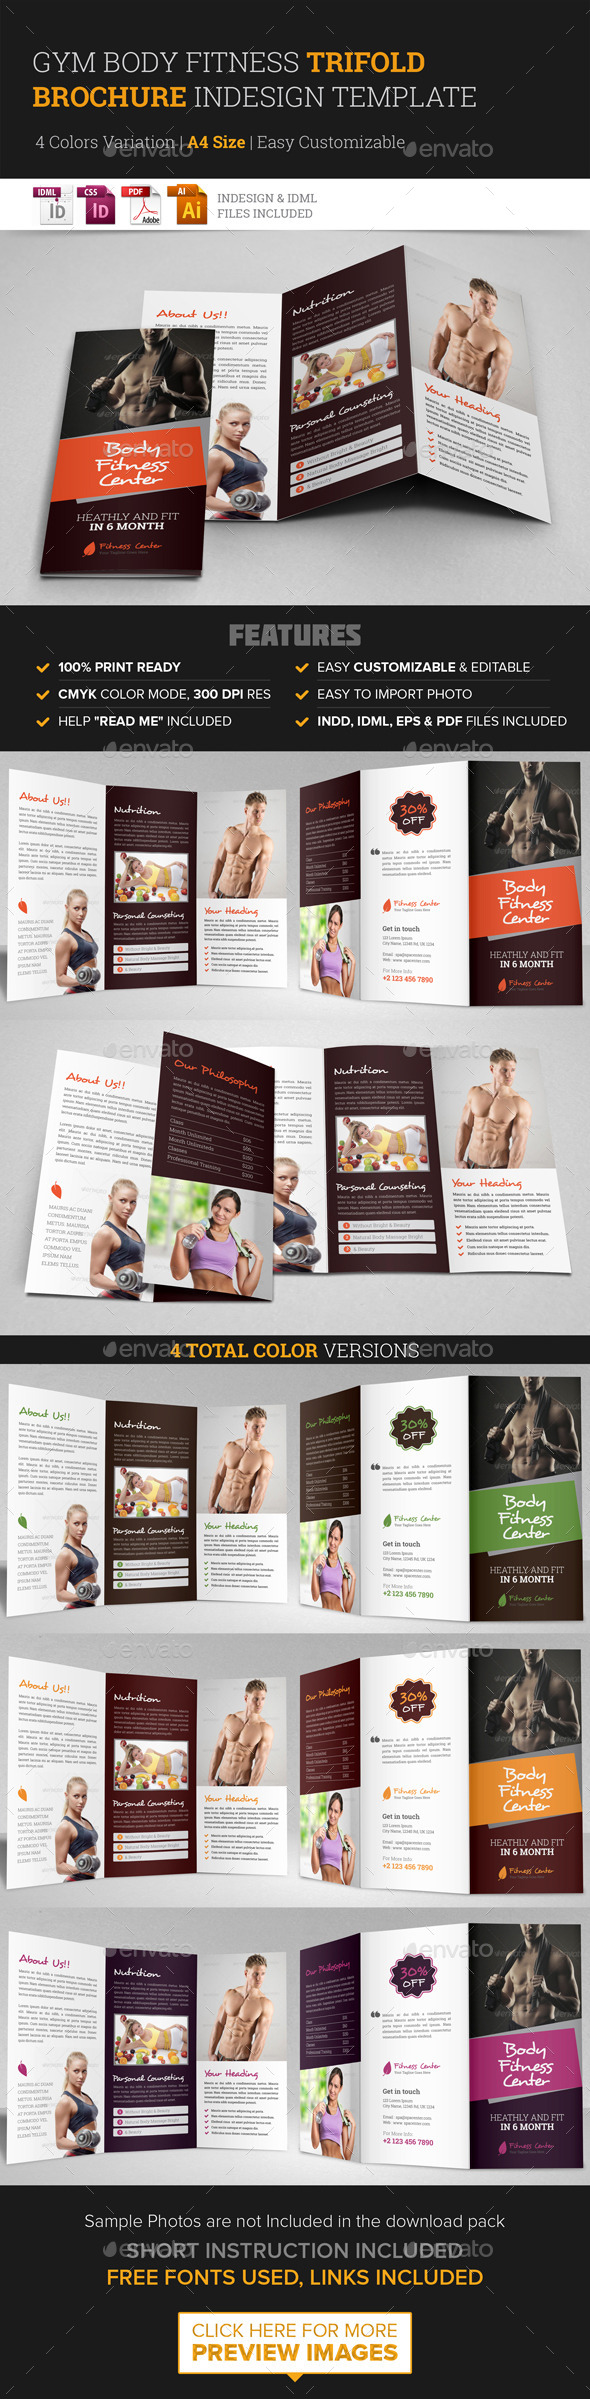 Gym fitness trifold brochure indesign template graphicriver for Gym brochure template